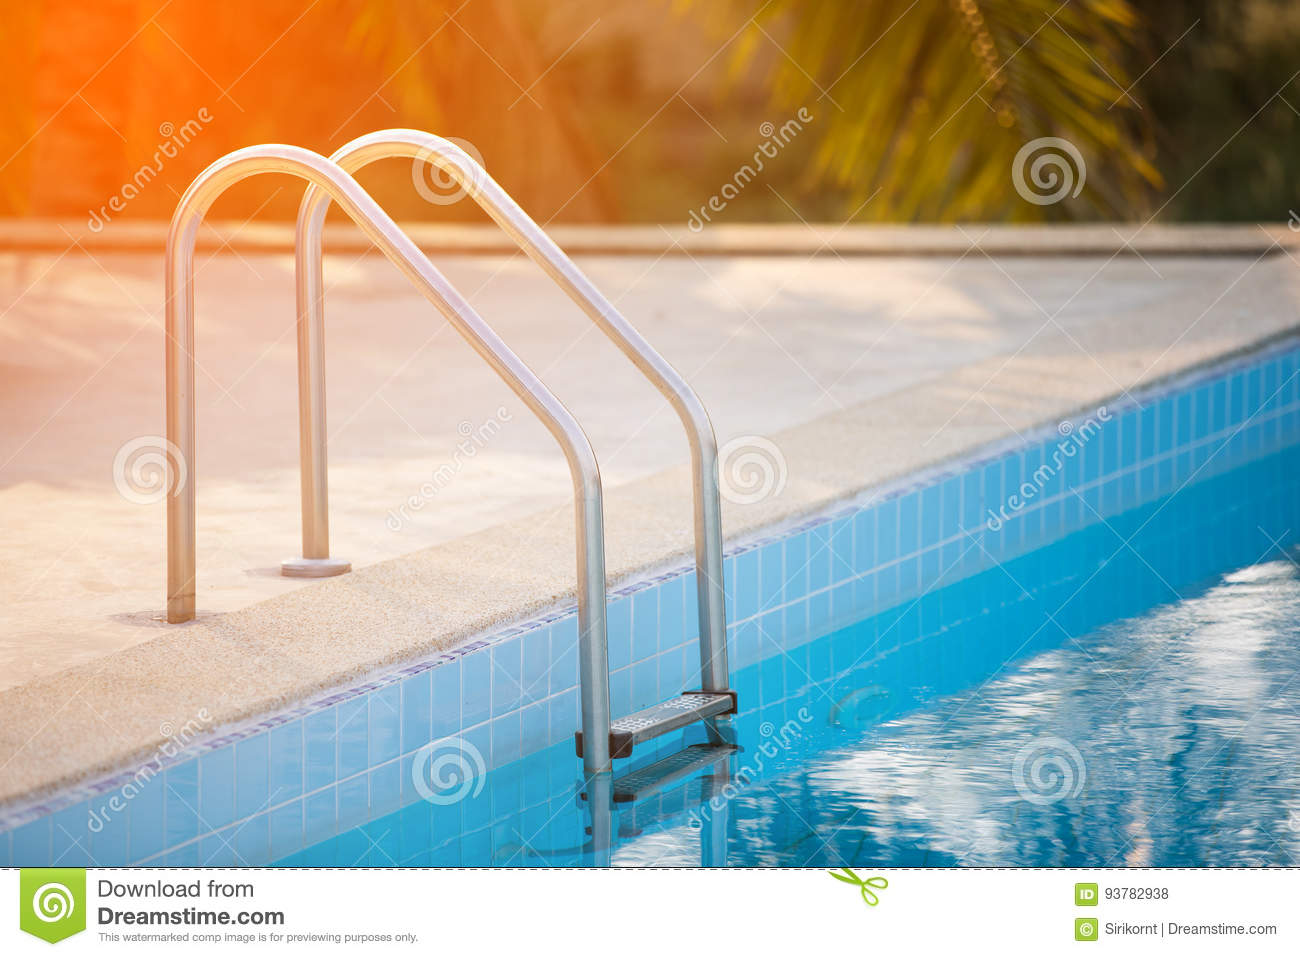 Jacuzzi Pool Ladder Grab Bars Ladder In The Blue Swimming Pool With Orange Sun